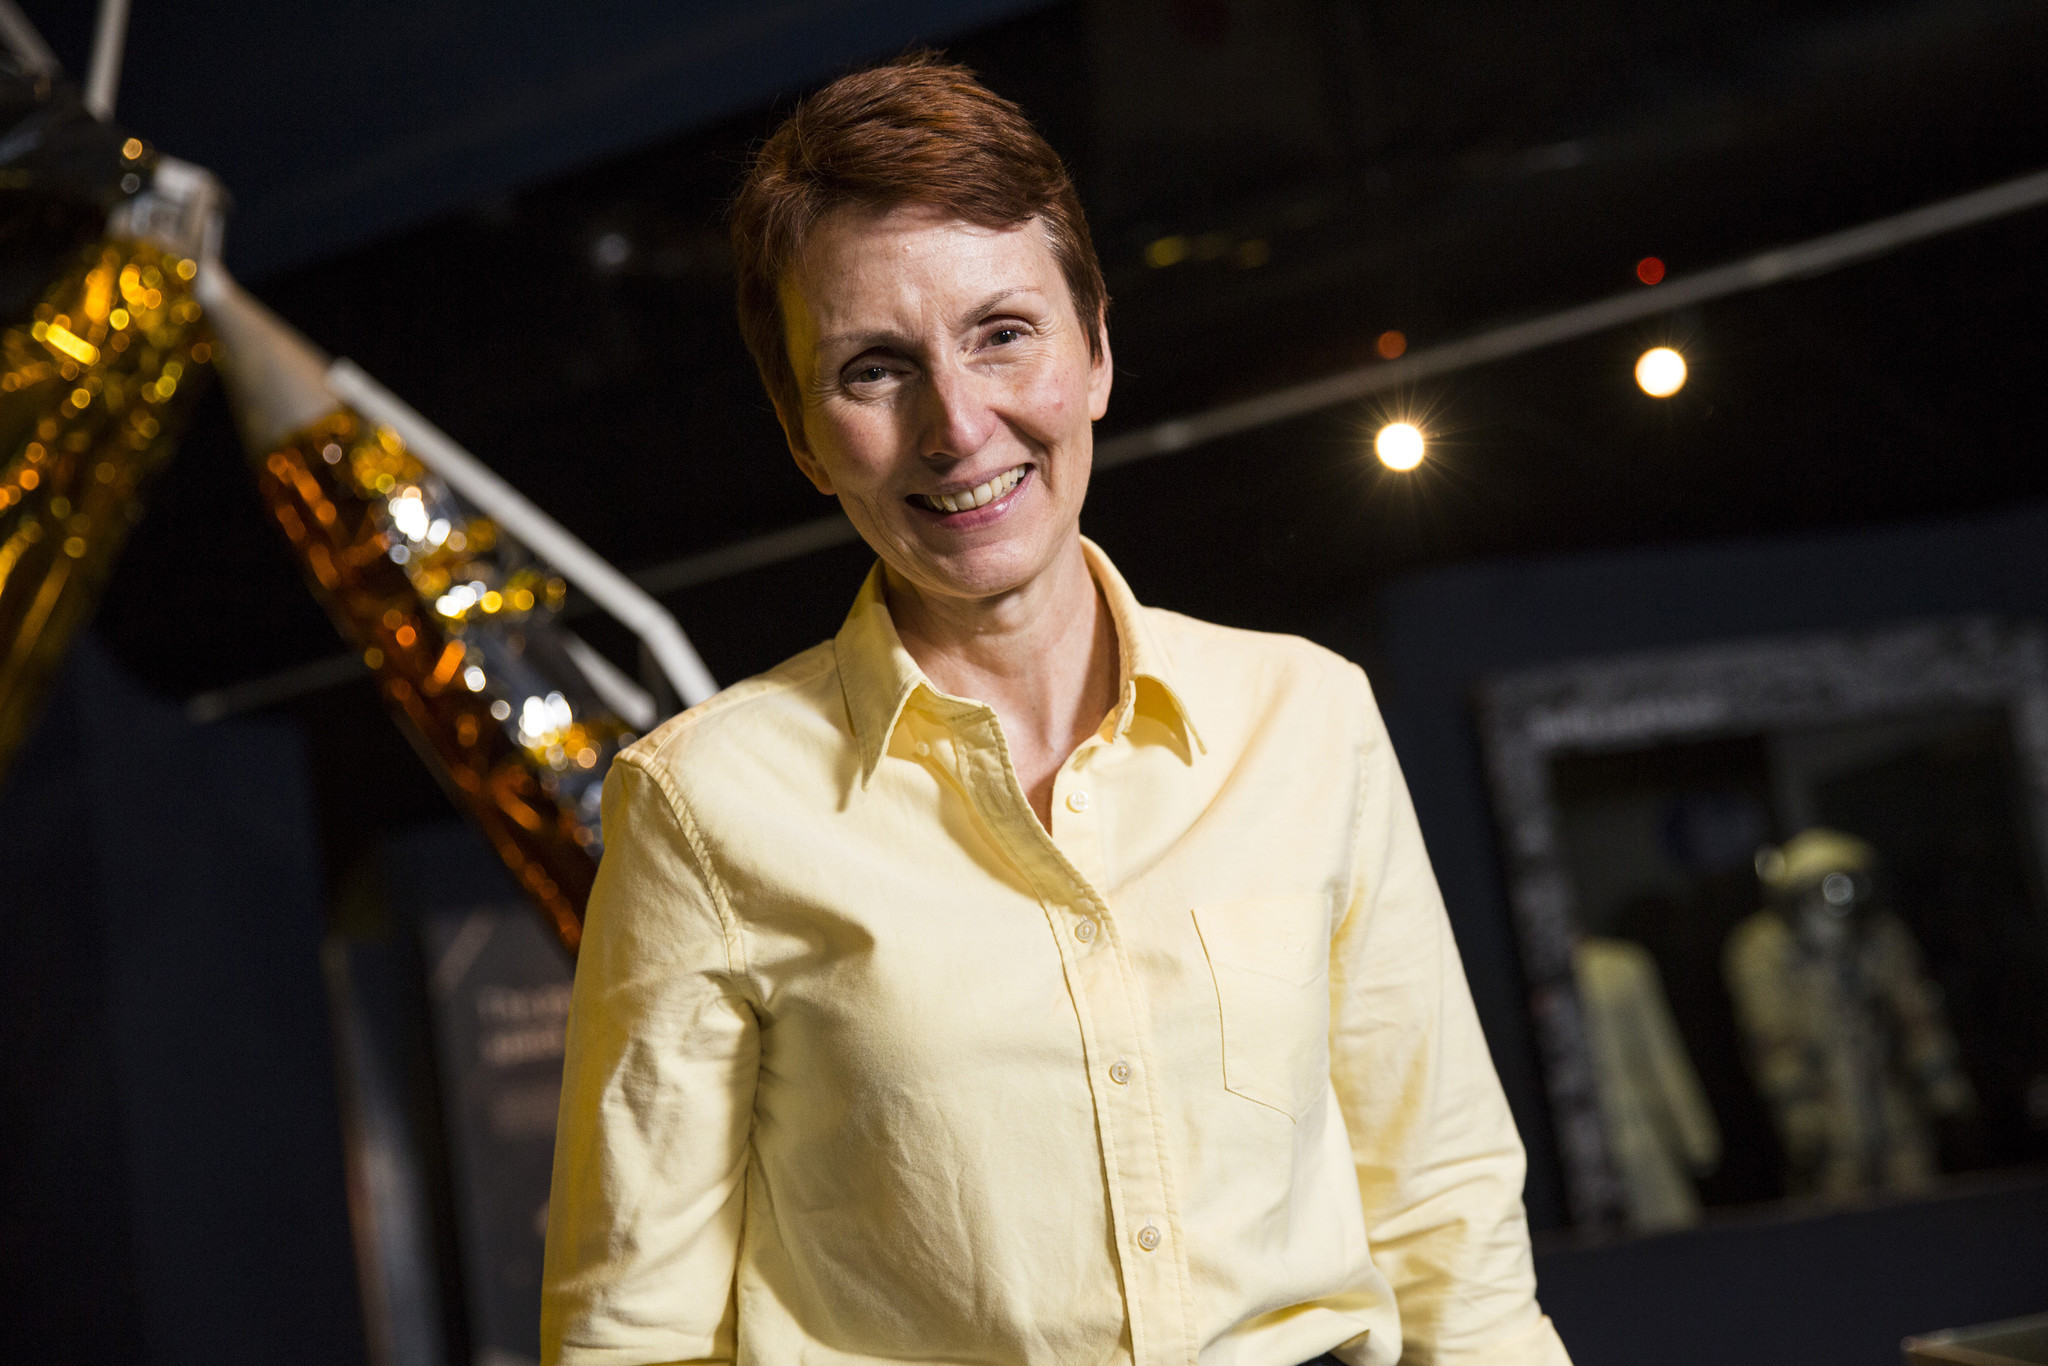 Aliens exist and they may already be here, says British astronaut